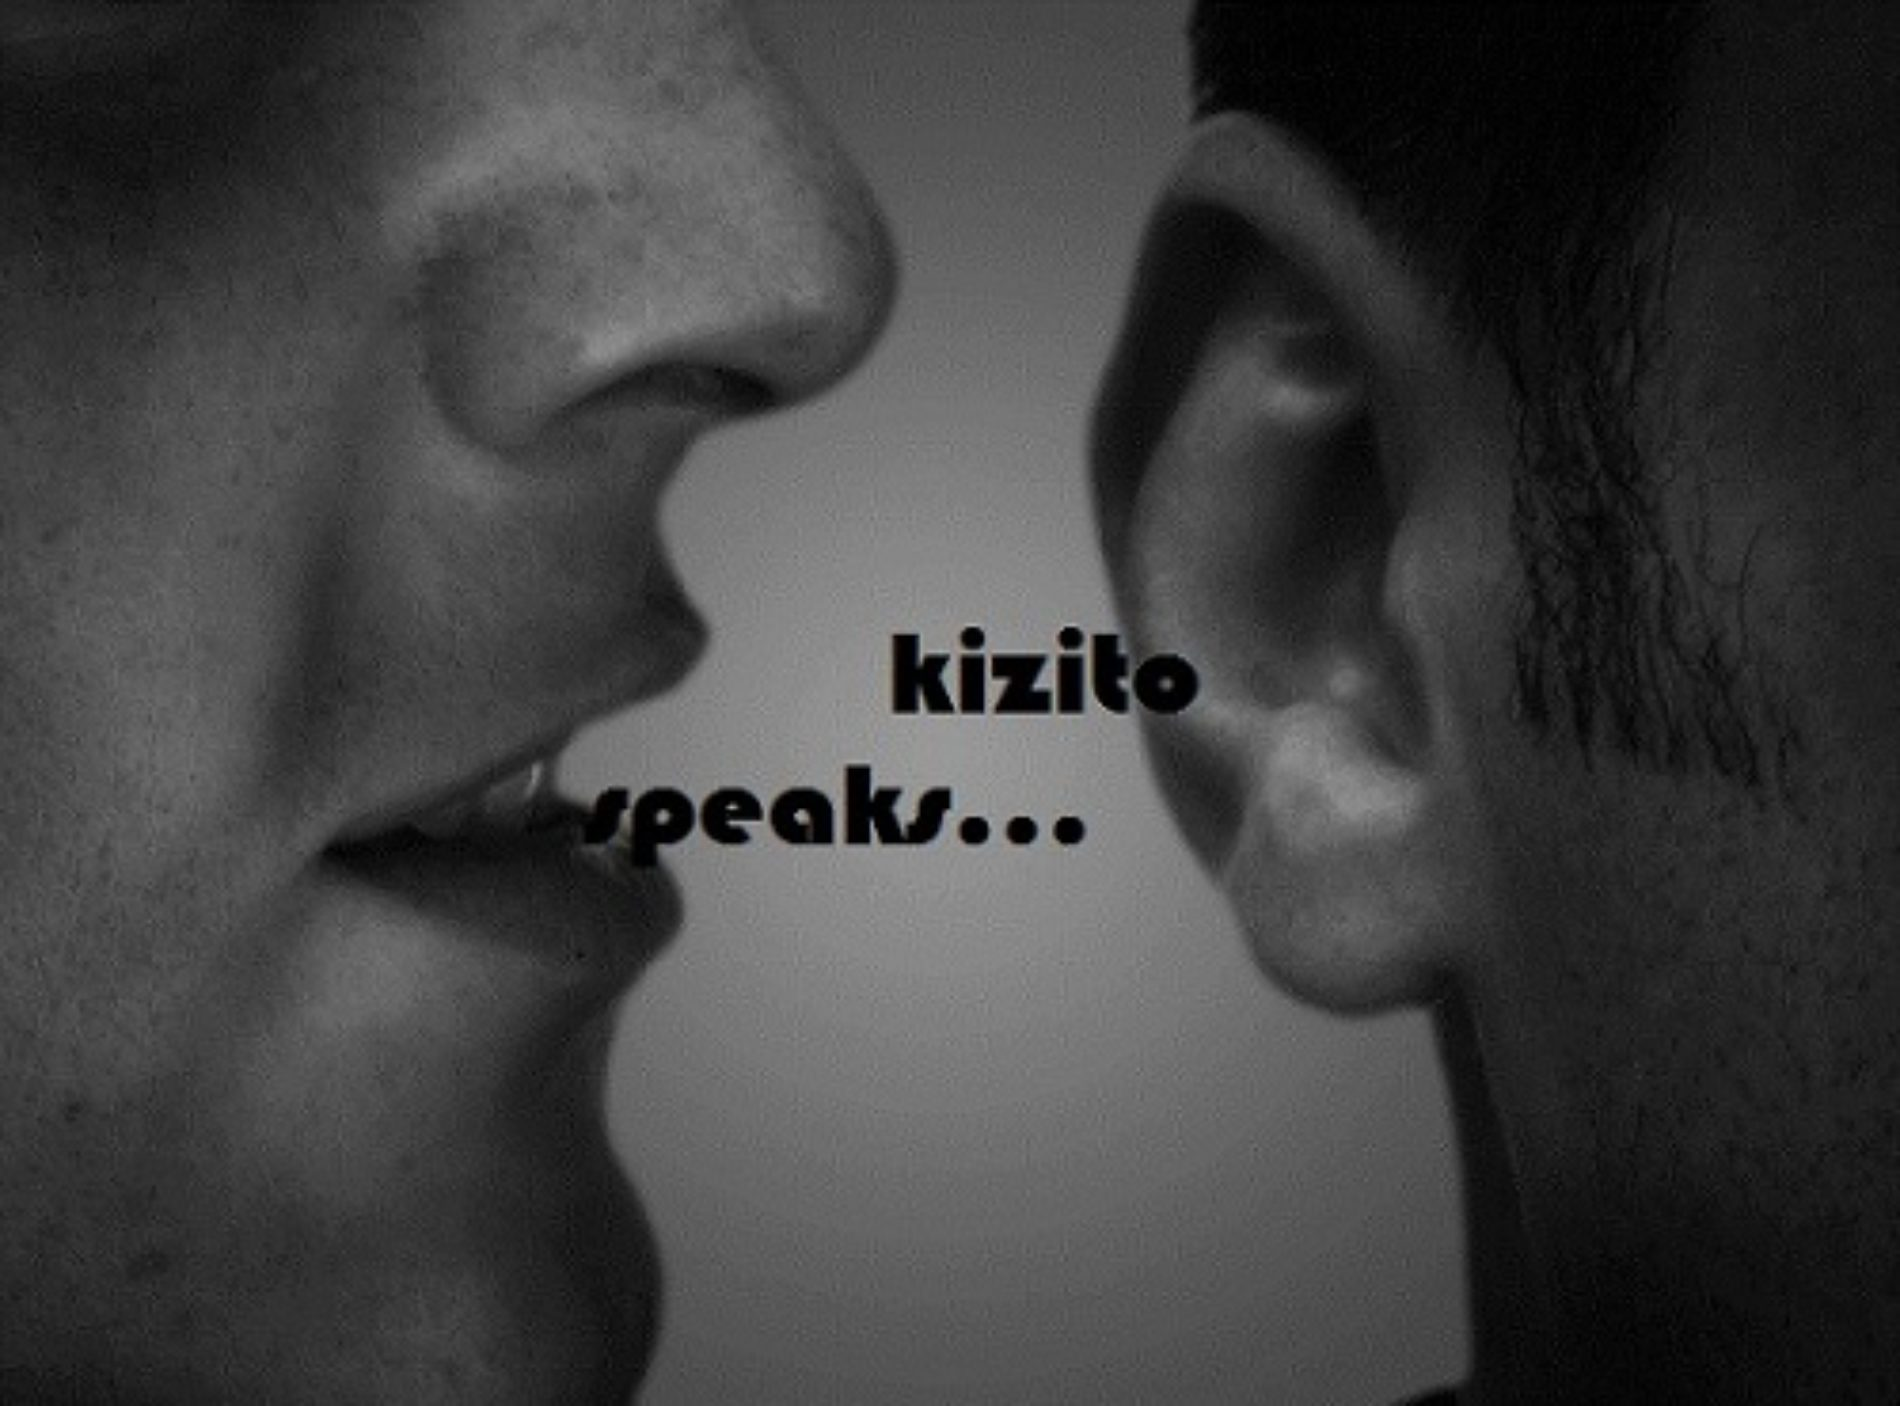 KIZITO SPEAKS III